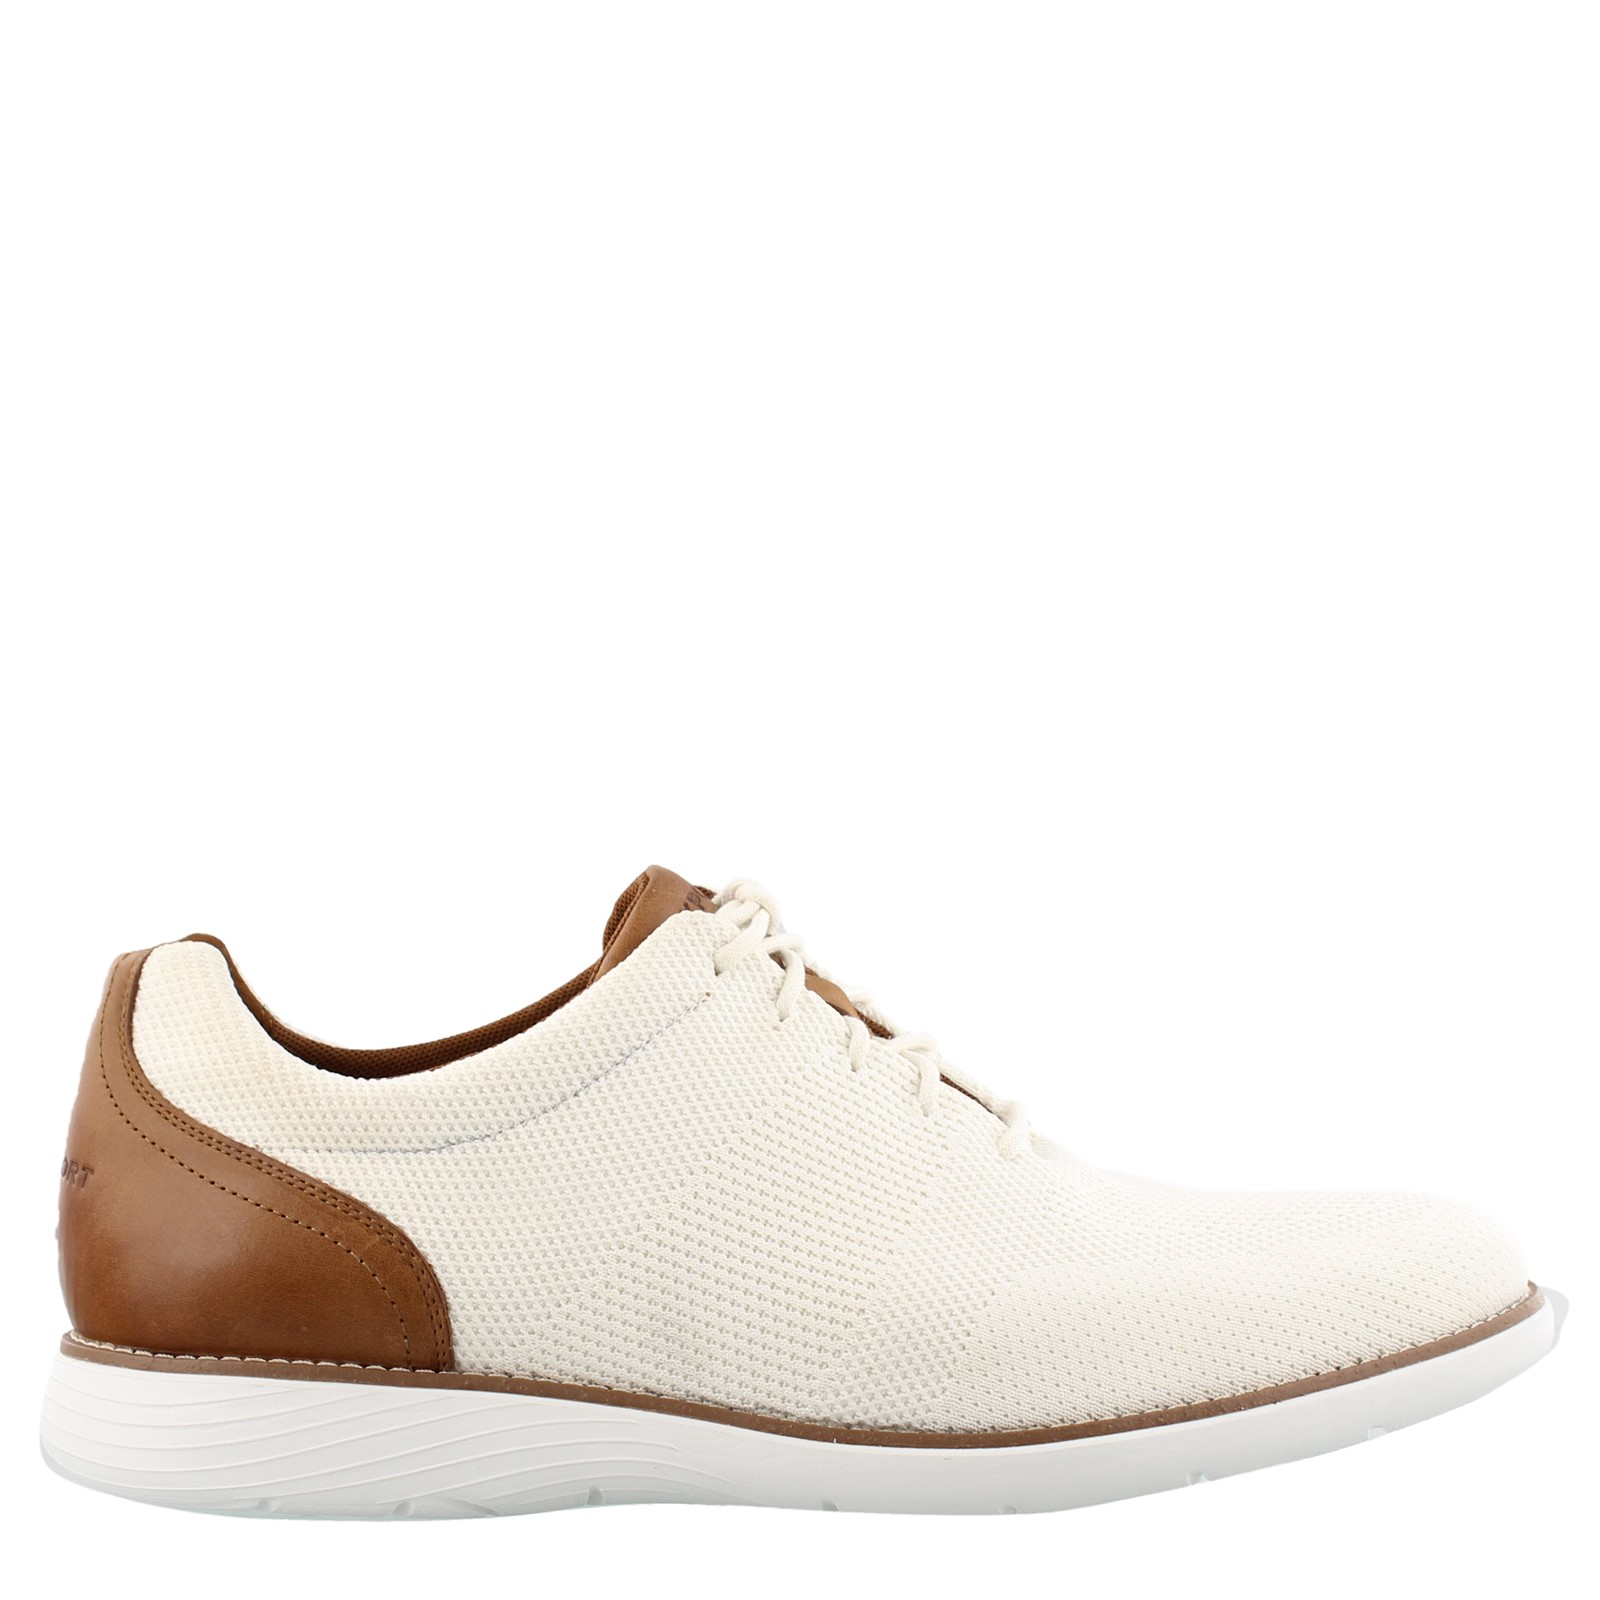 Men's Rockport, Garett Mesh Oxfords